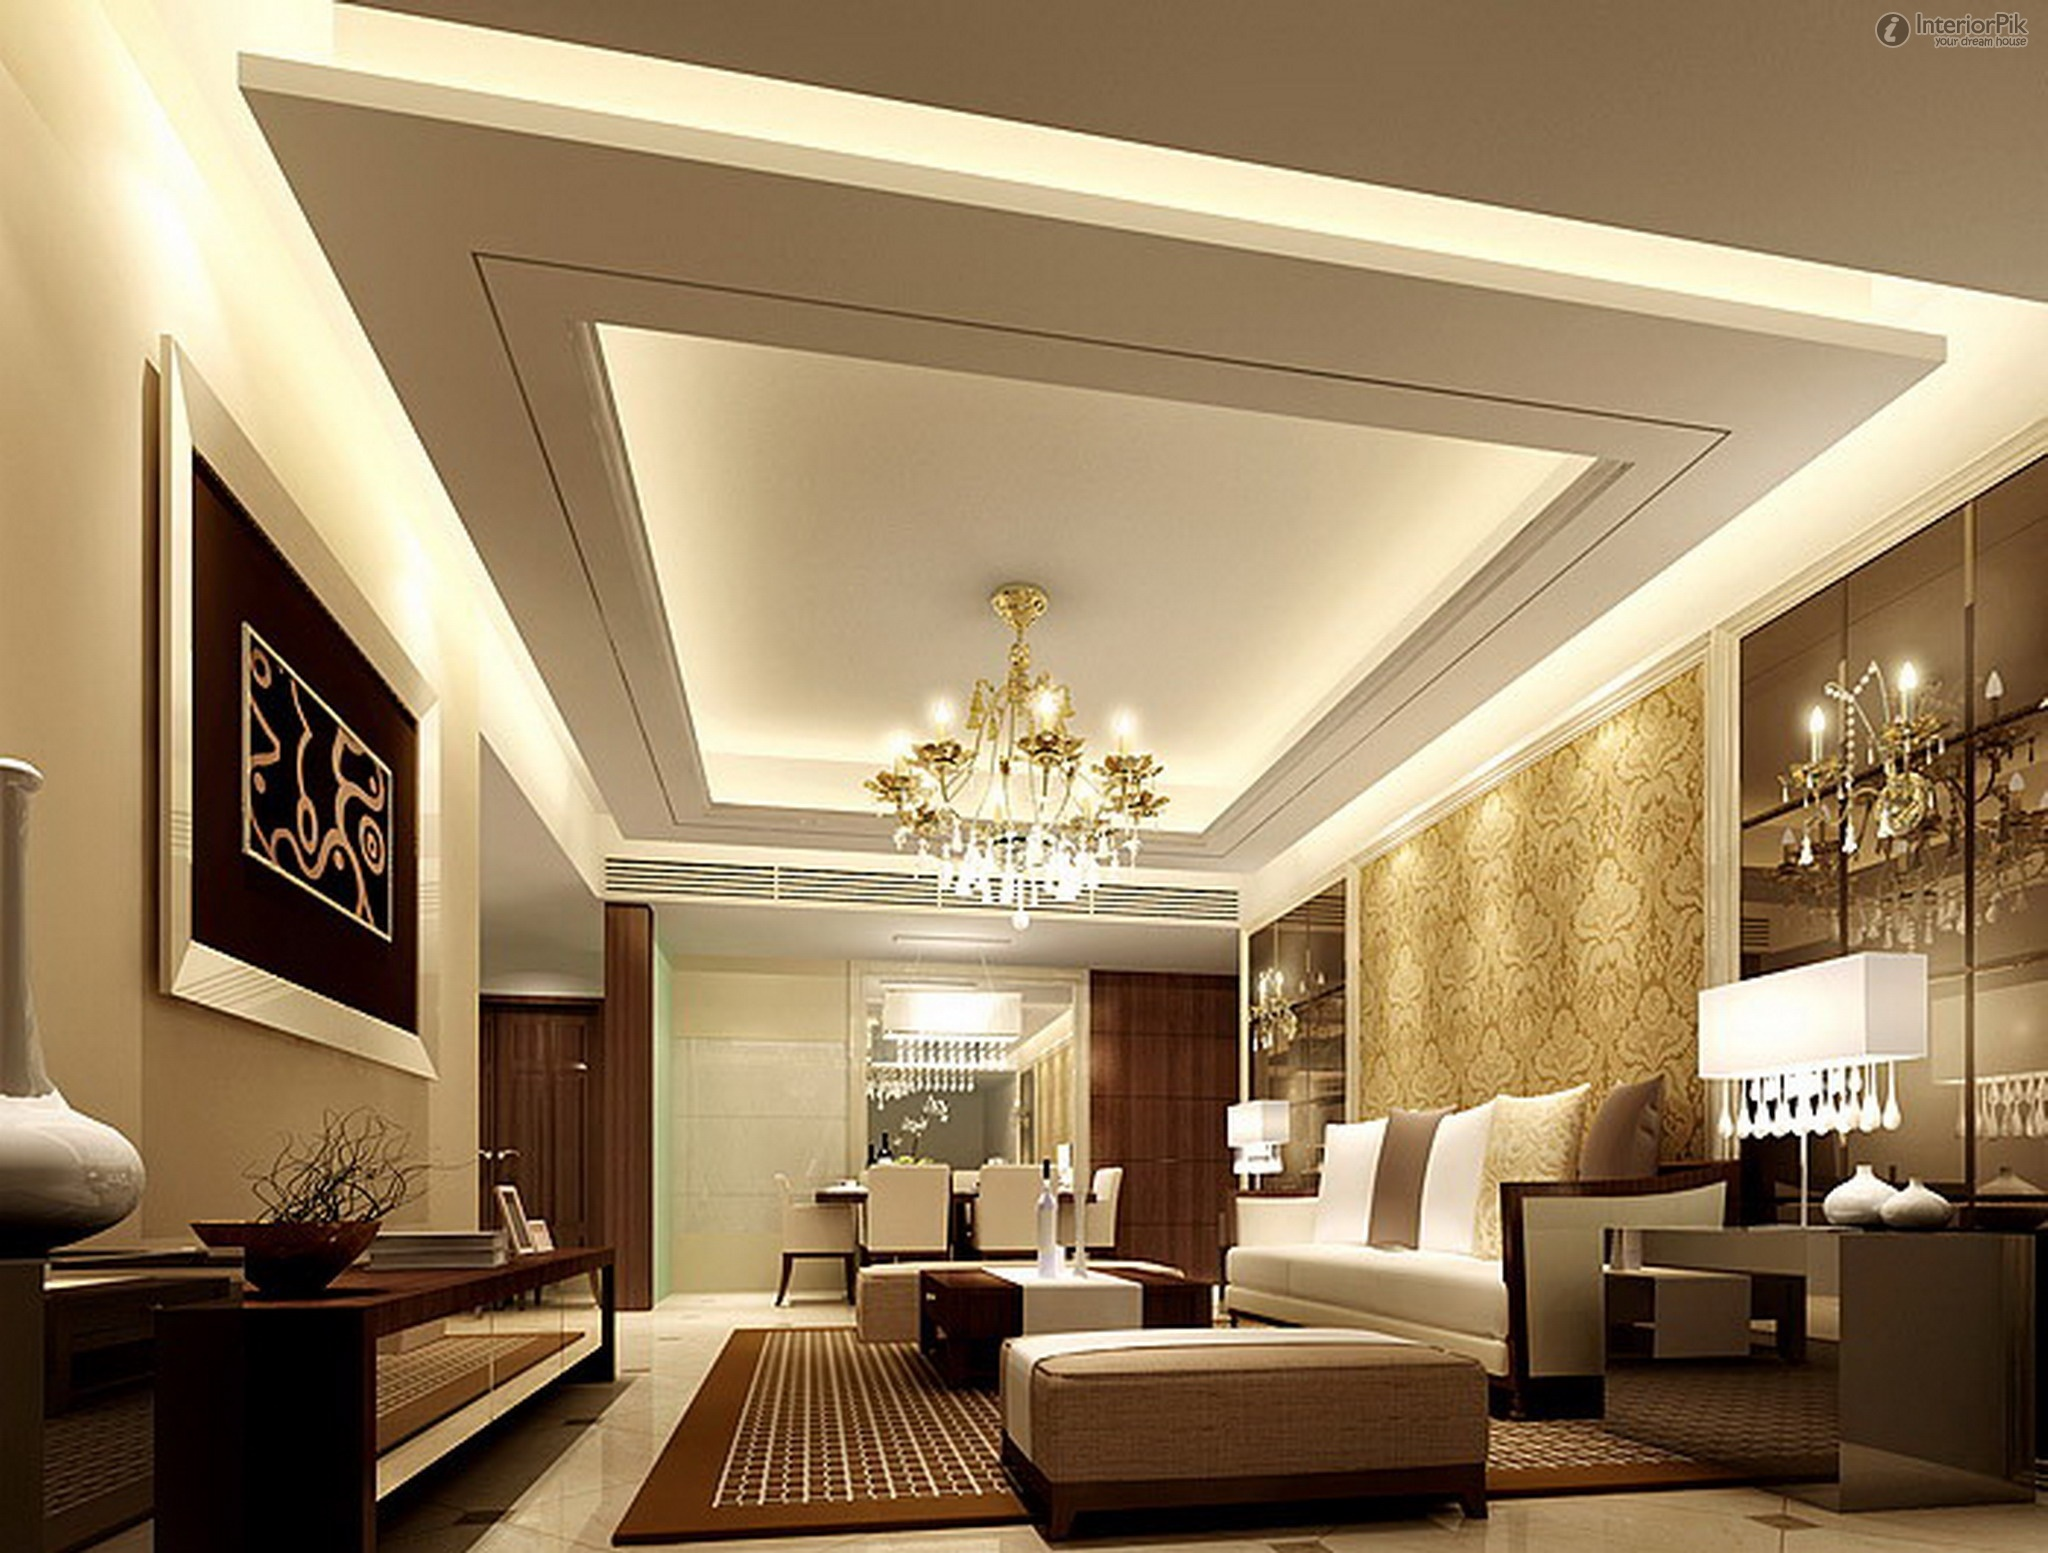 White Ceiling With Cool Architecture And Chandelier Sofas Artistic Frame Green Design Of Living Room